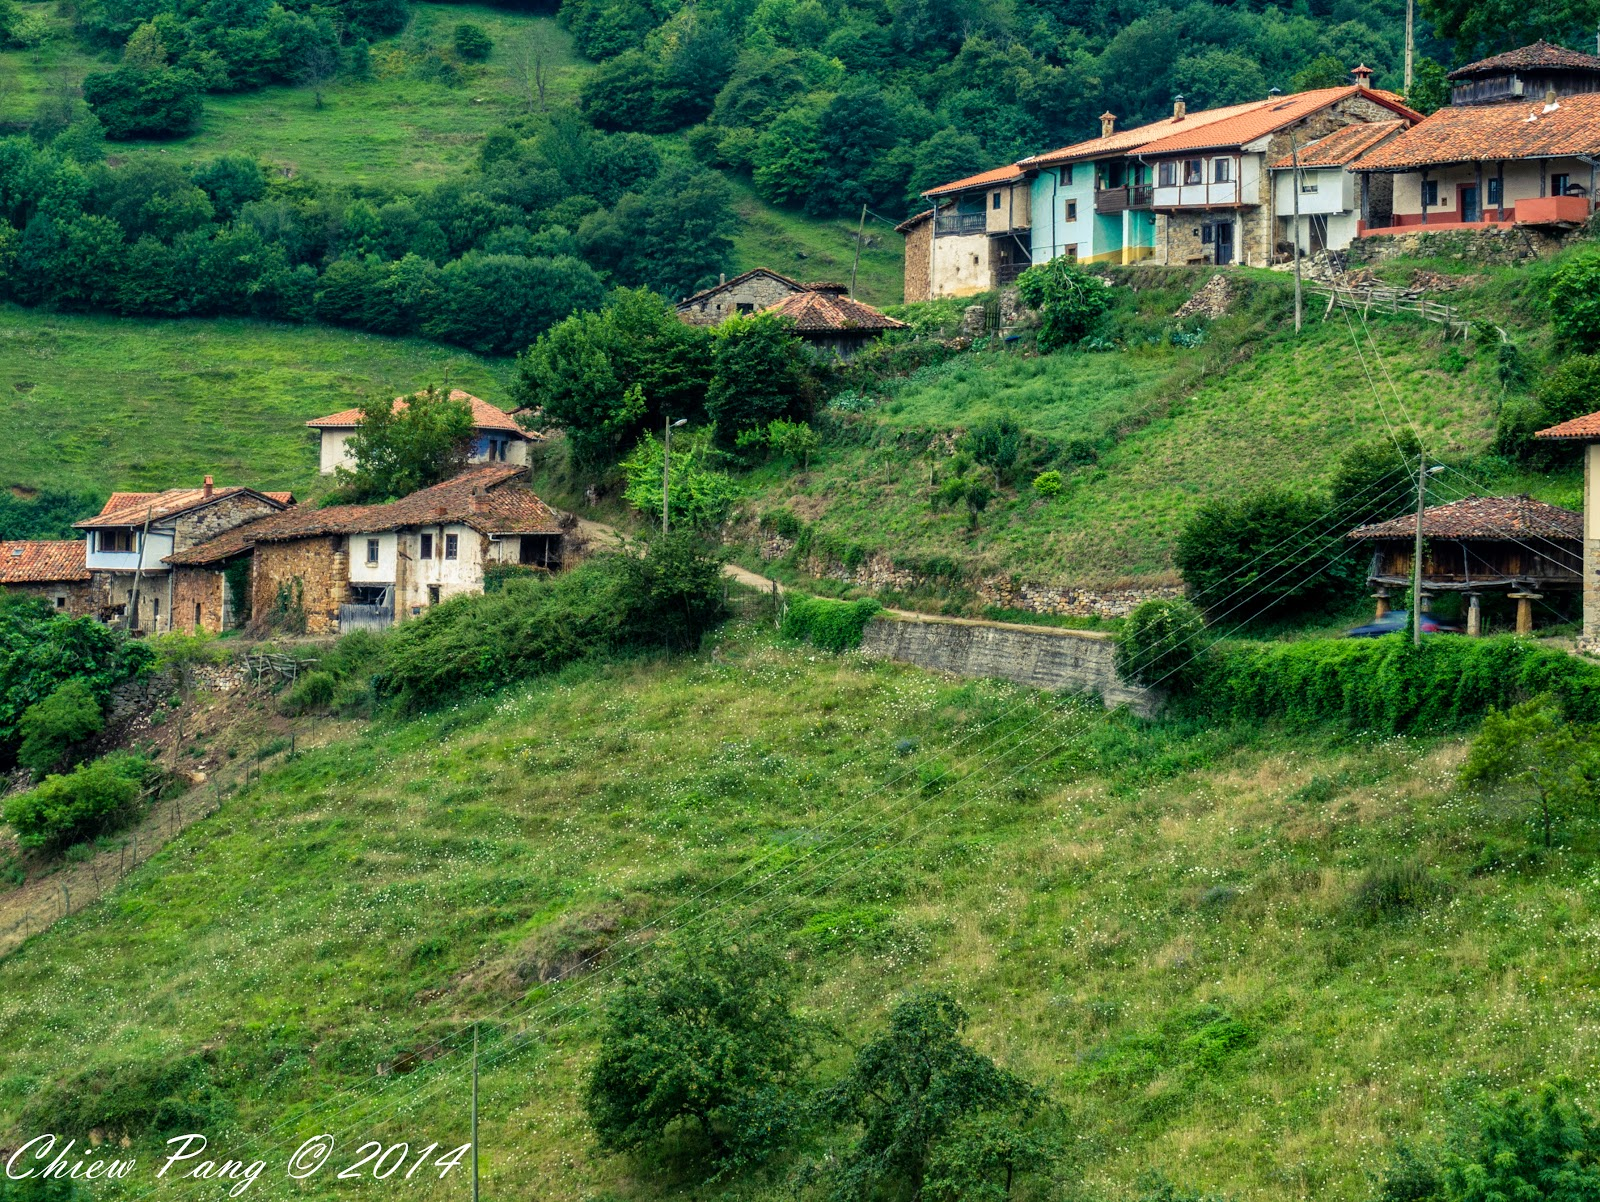 Tiny village of Bandujo, Proaza, Asturias